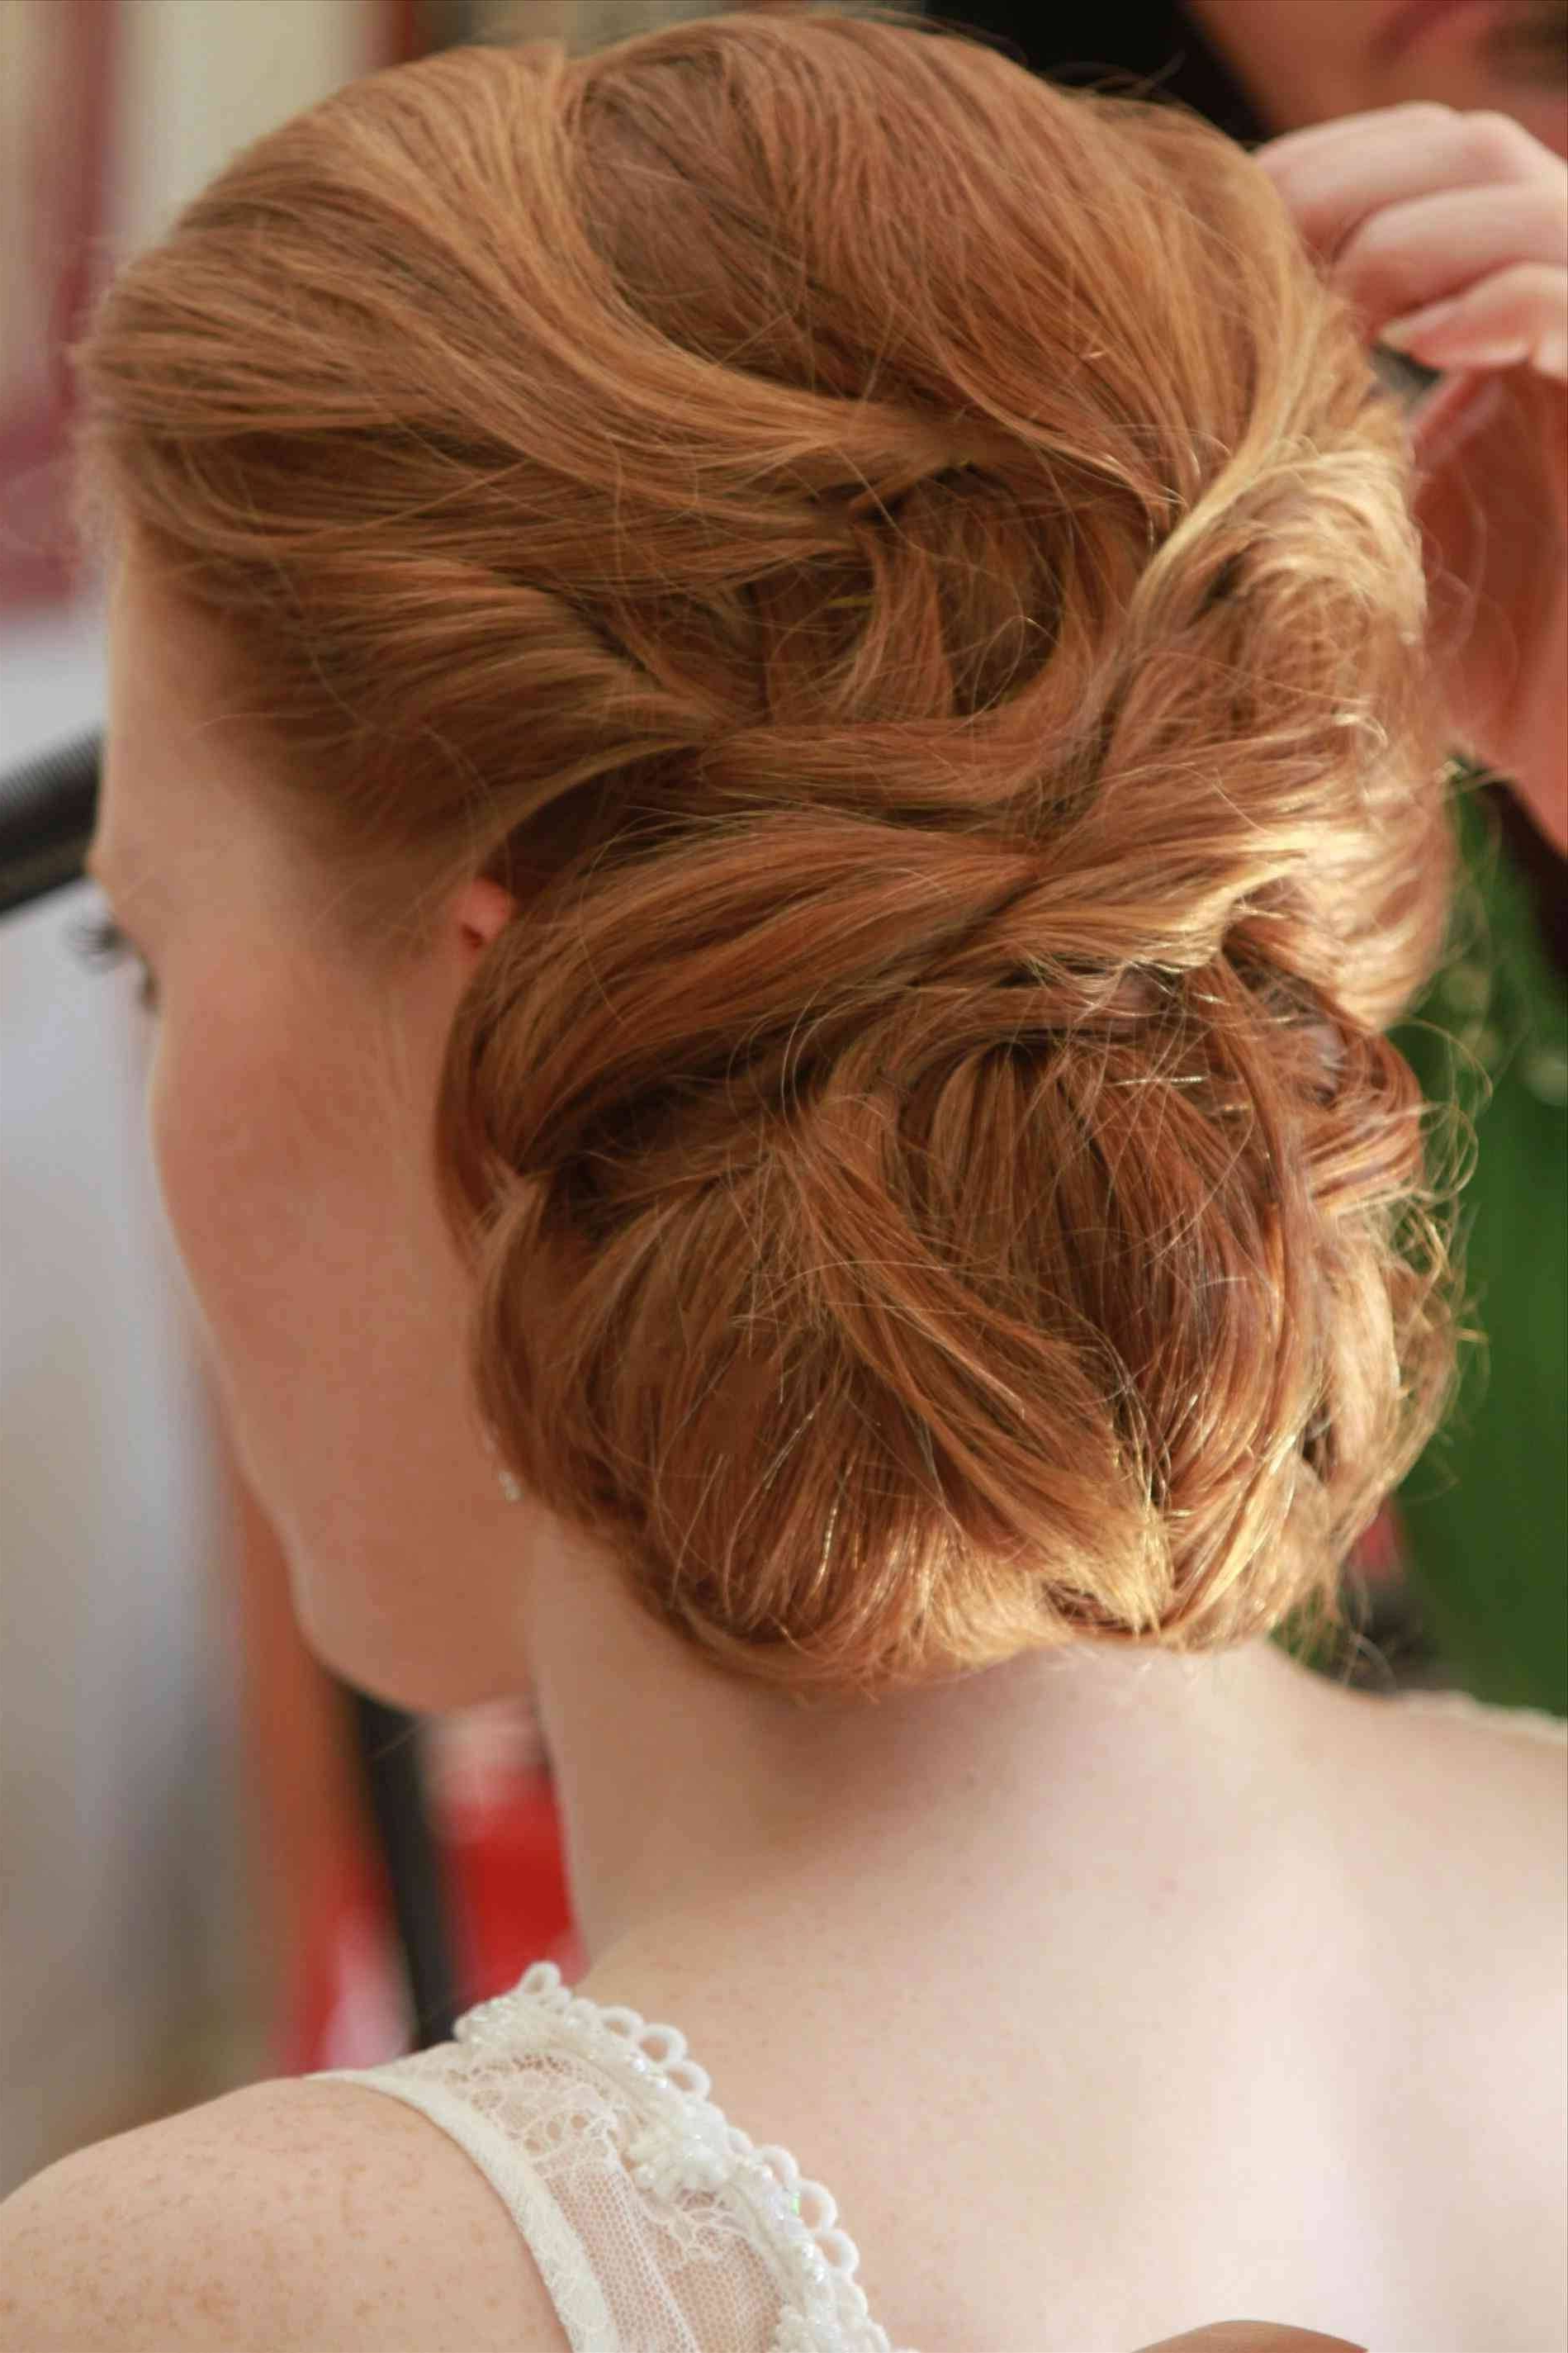 One Bridal Styles Bride Hair Up Styles To The Side Twisted Hair Up For Newest Twisted Side Updo Hairstyles For Wedding (View 10 of 20)